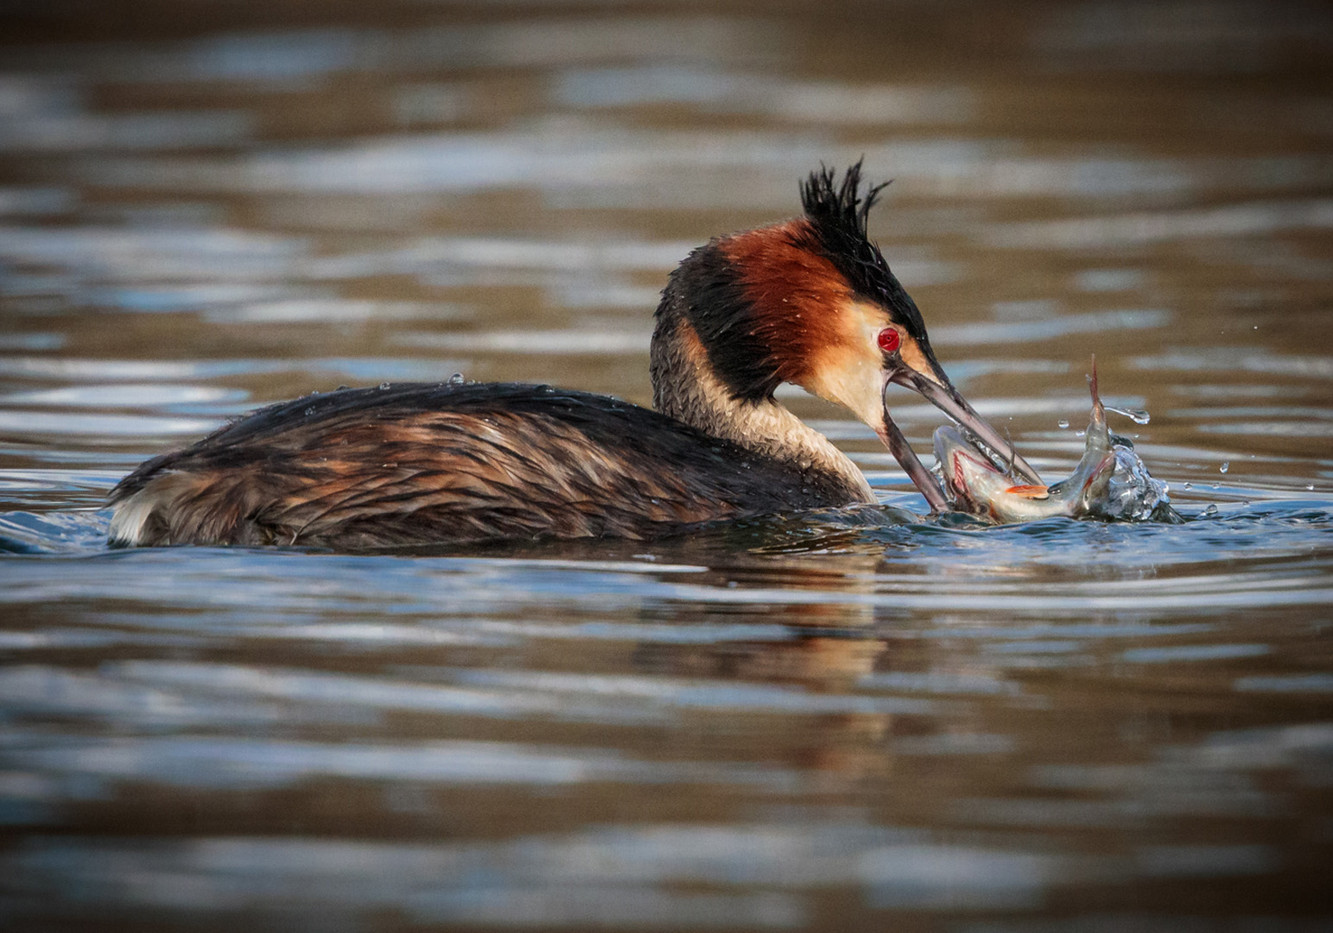 20 A GREAT CRESTED GREBE GRAPPLES WITH ITS CATCH by David Godfrey